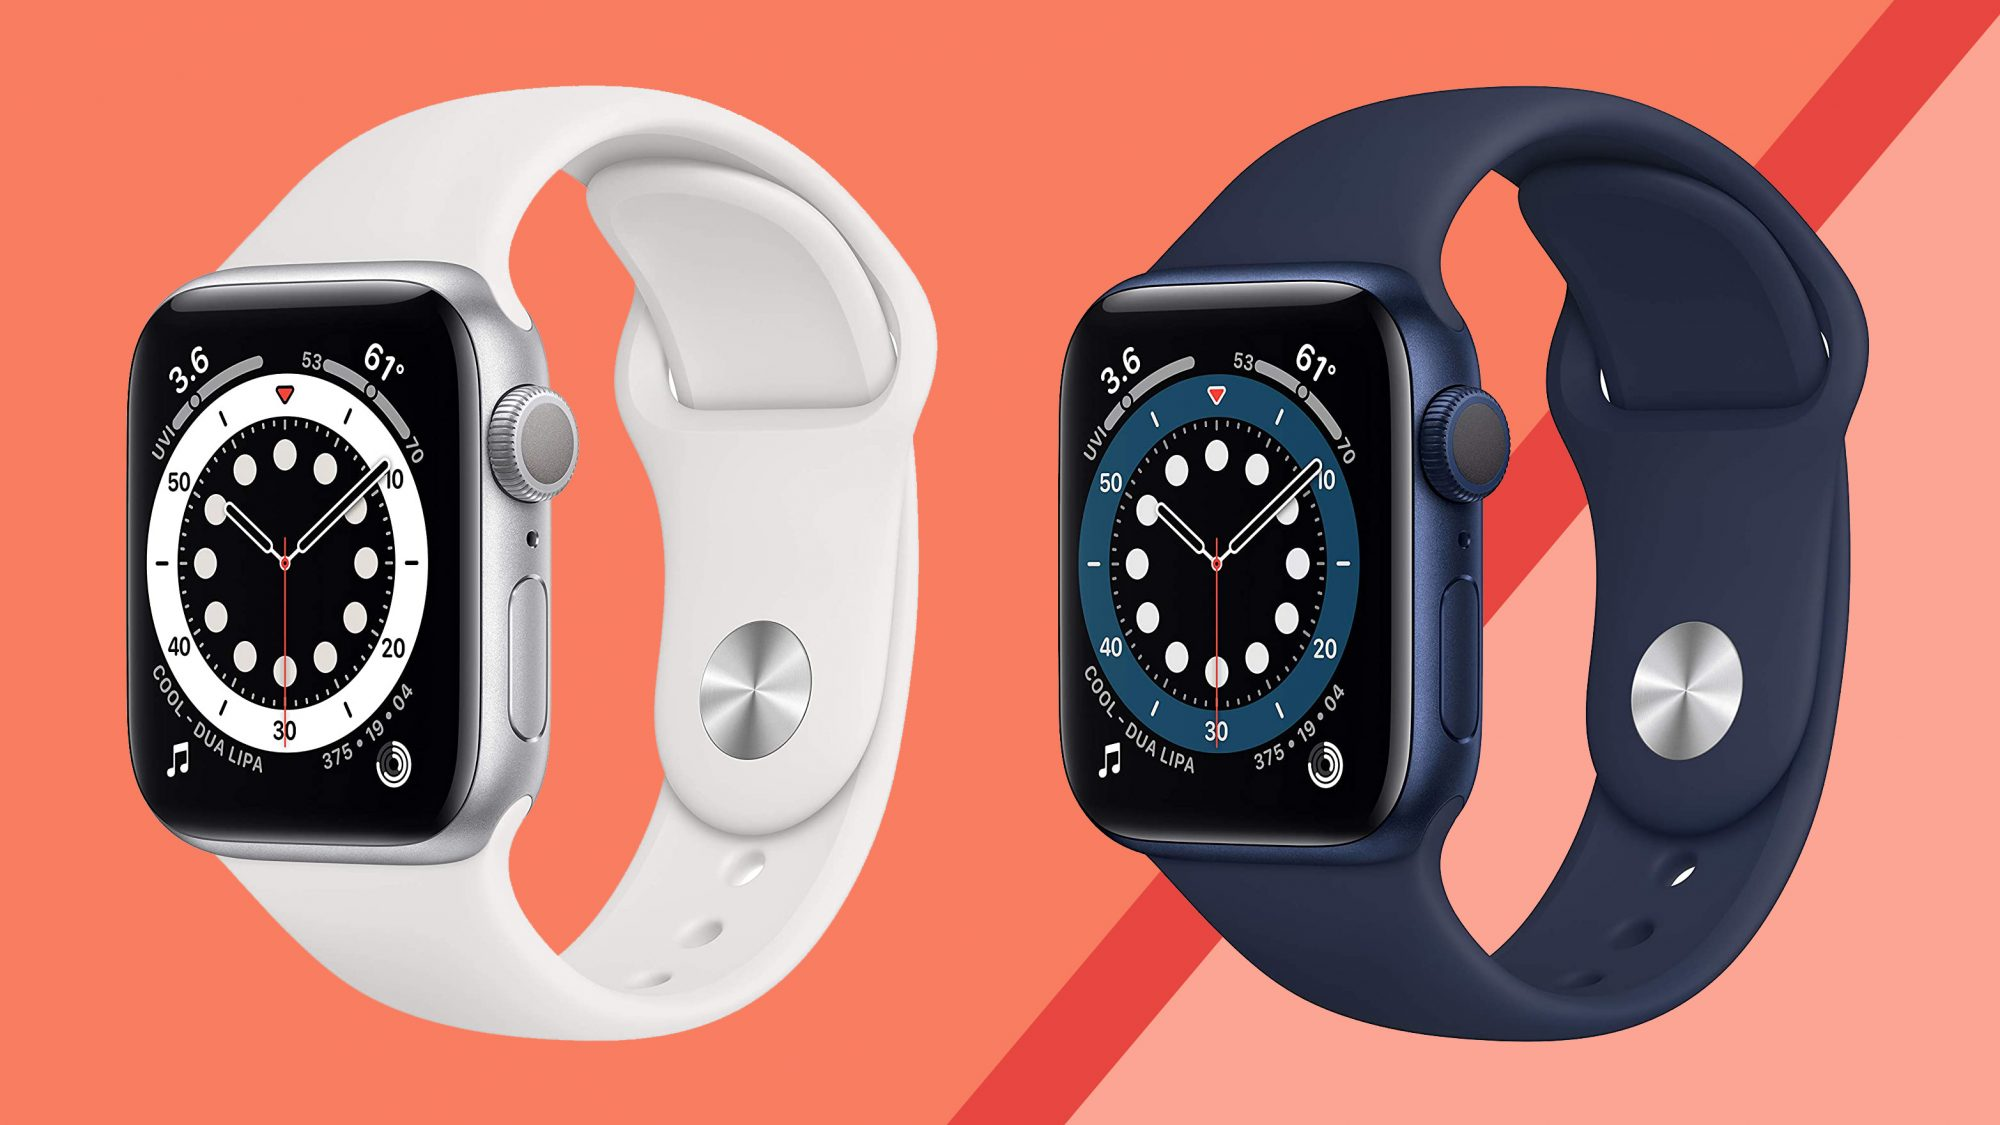 Best christmas gifts 2020 - apple watch SE tout on orange background